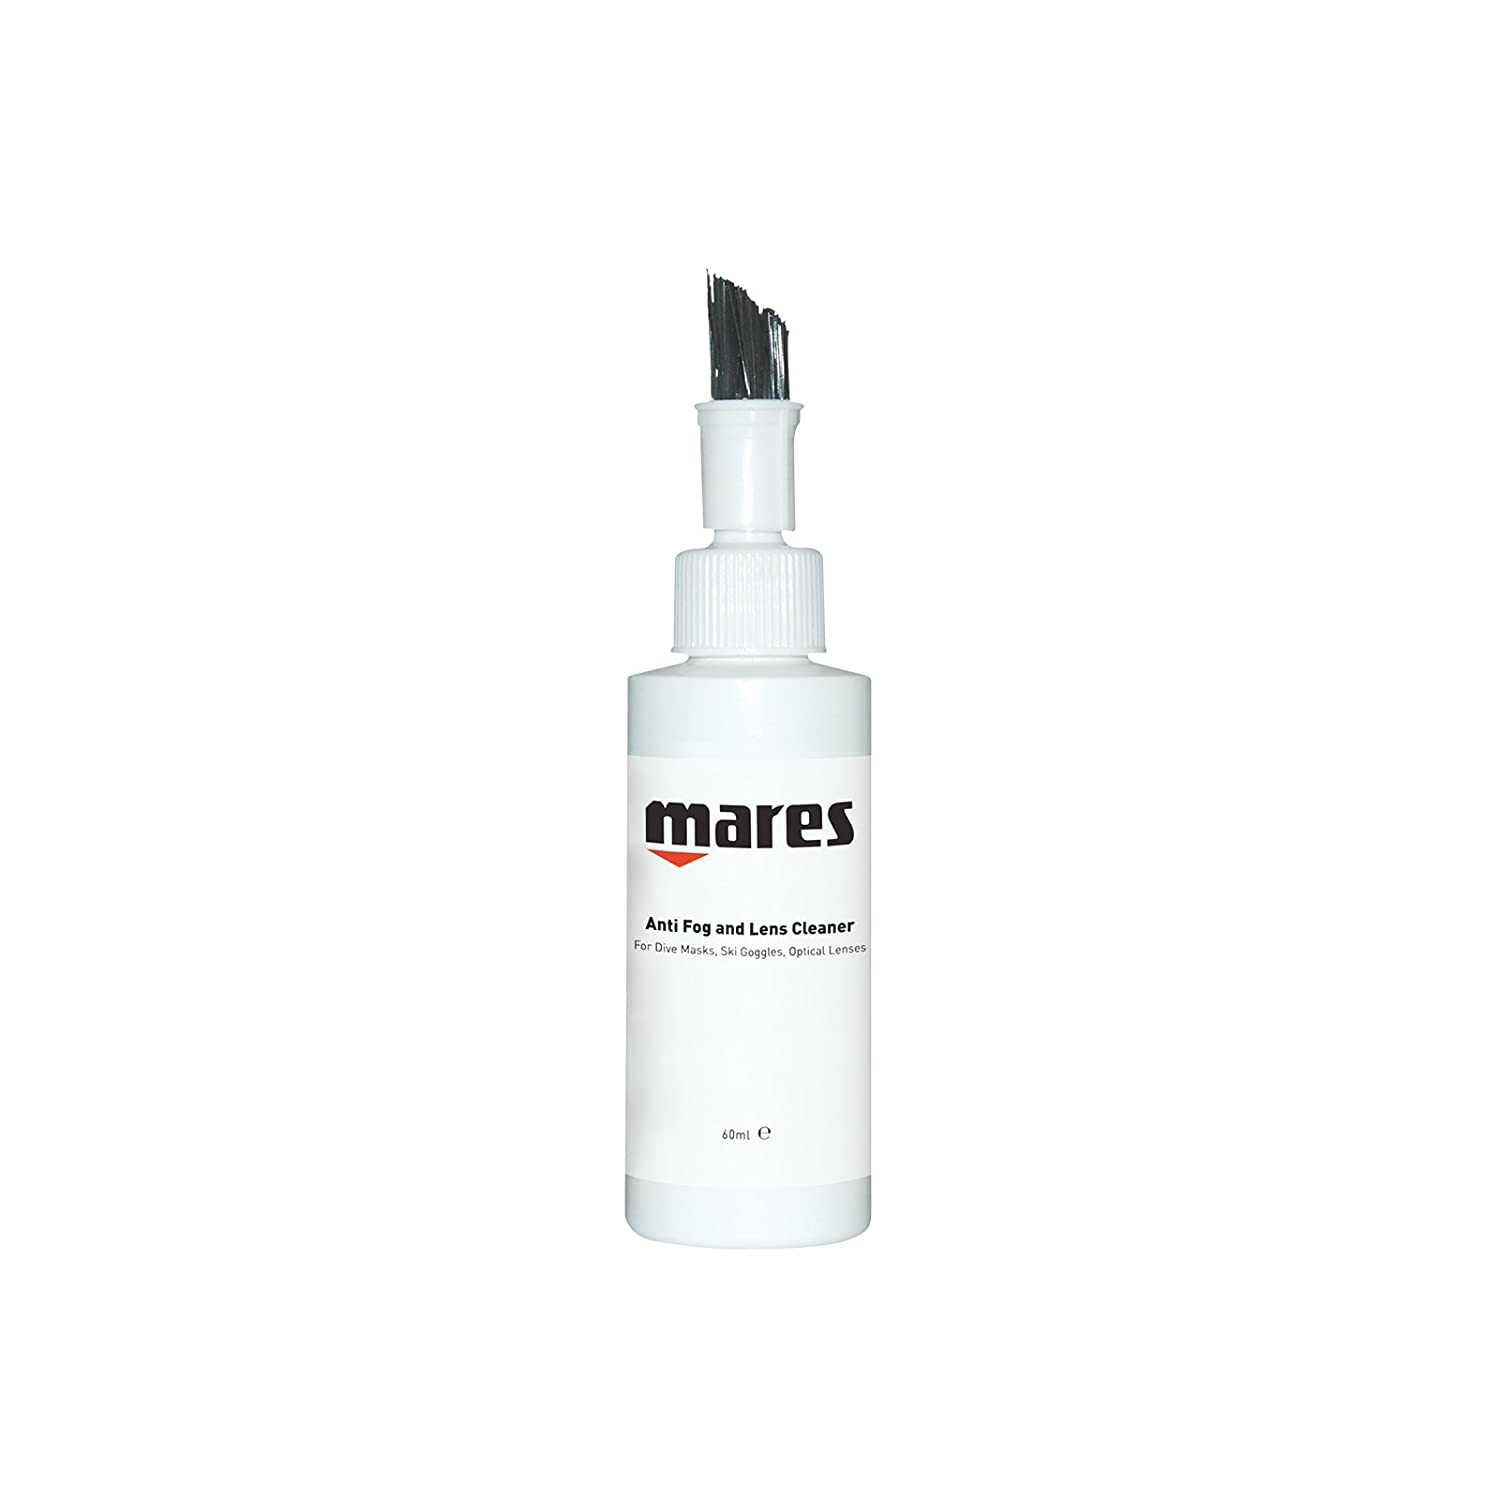 Mares Anti Fog Gel - Limpiador de Lentes, Color Blanco 0792460115041